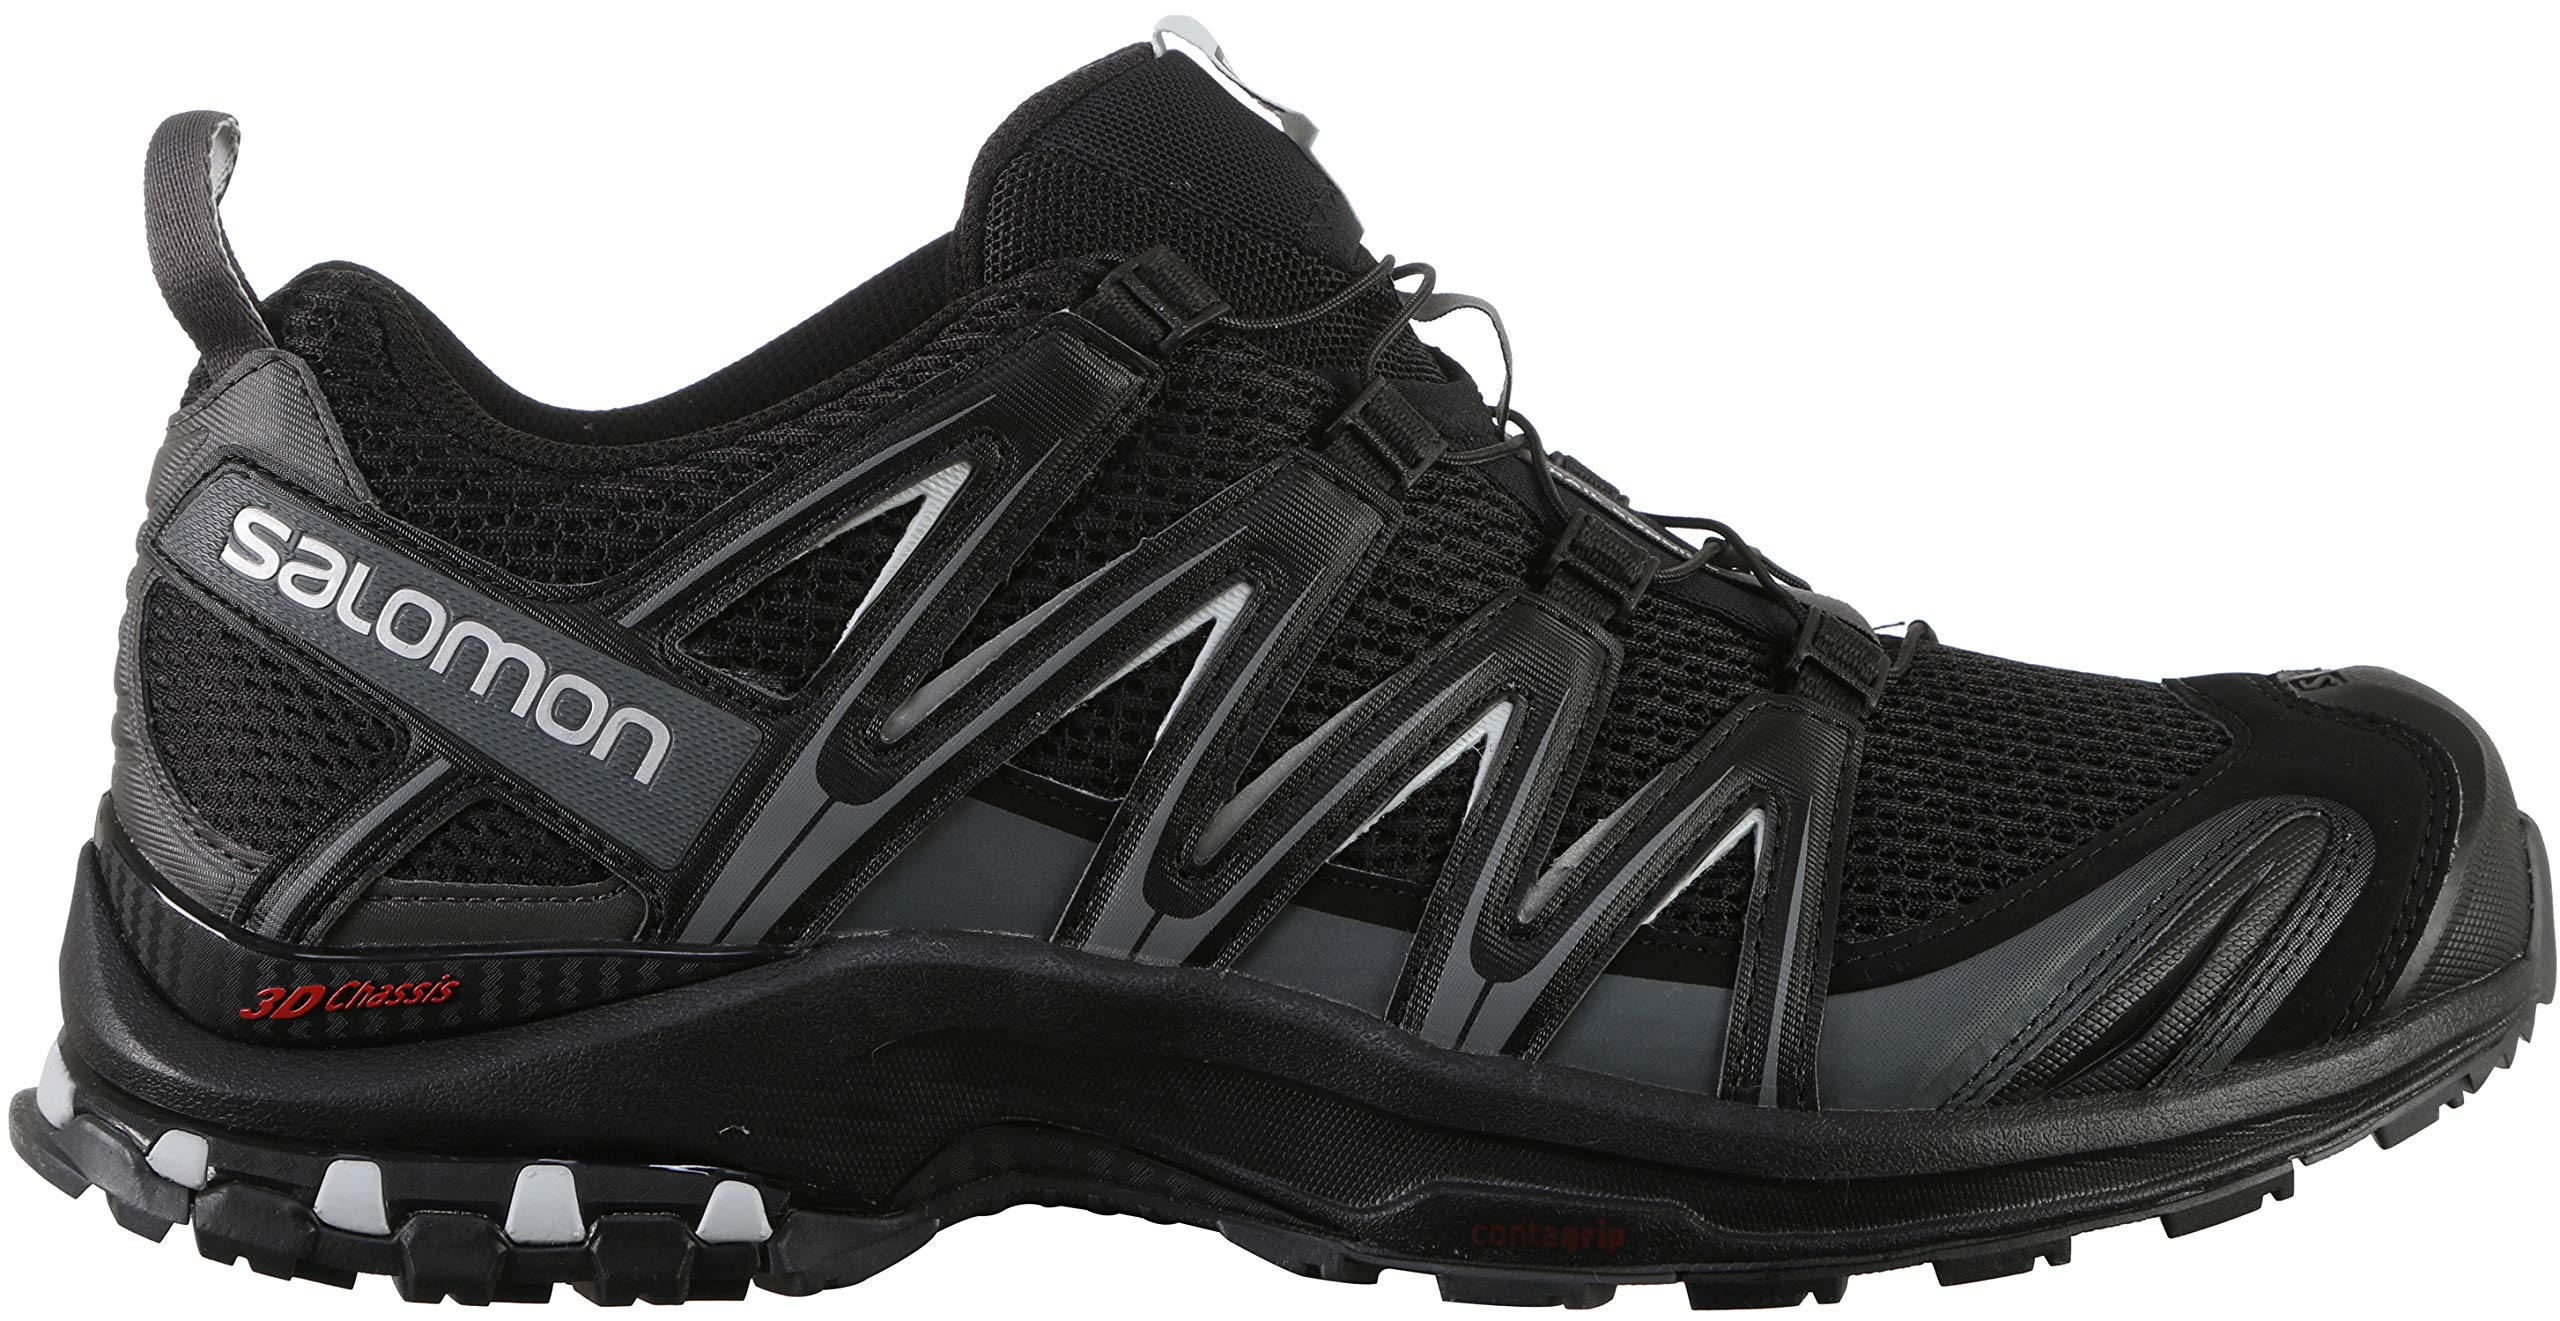 Salomon Men's XA PRO 3D Trail Runner, Black, 11.5 M US by SALOMON